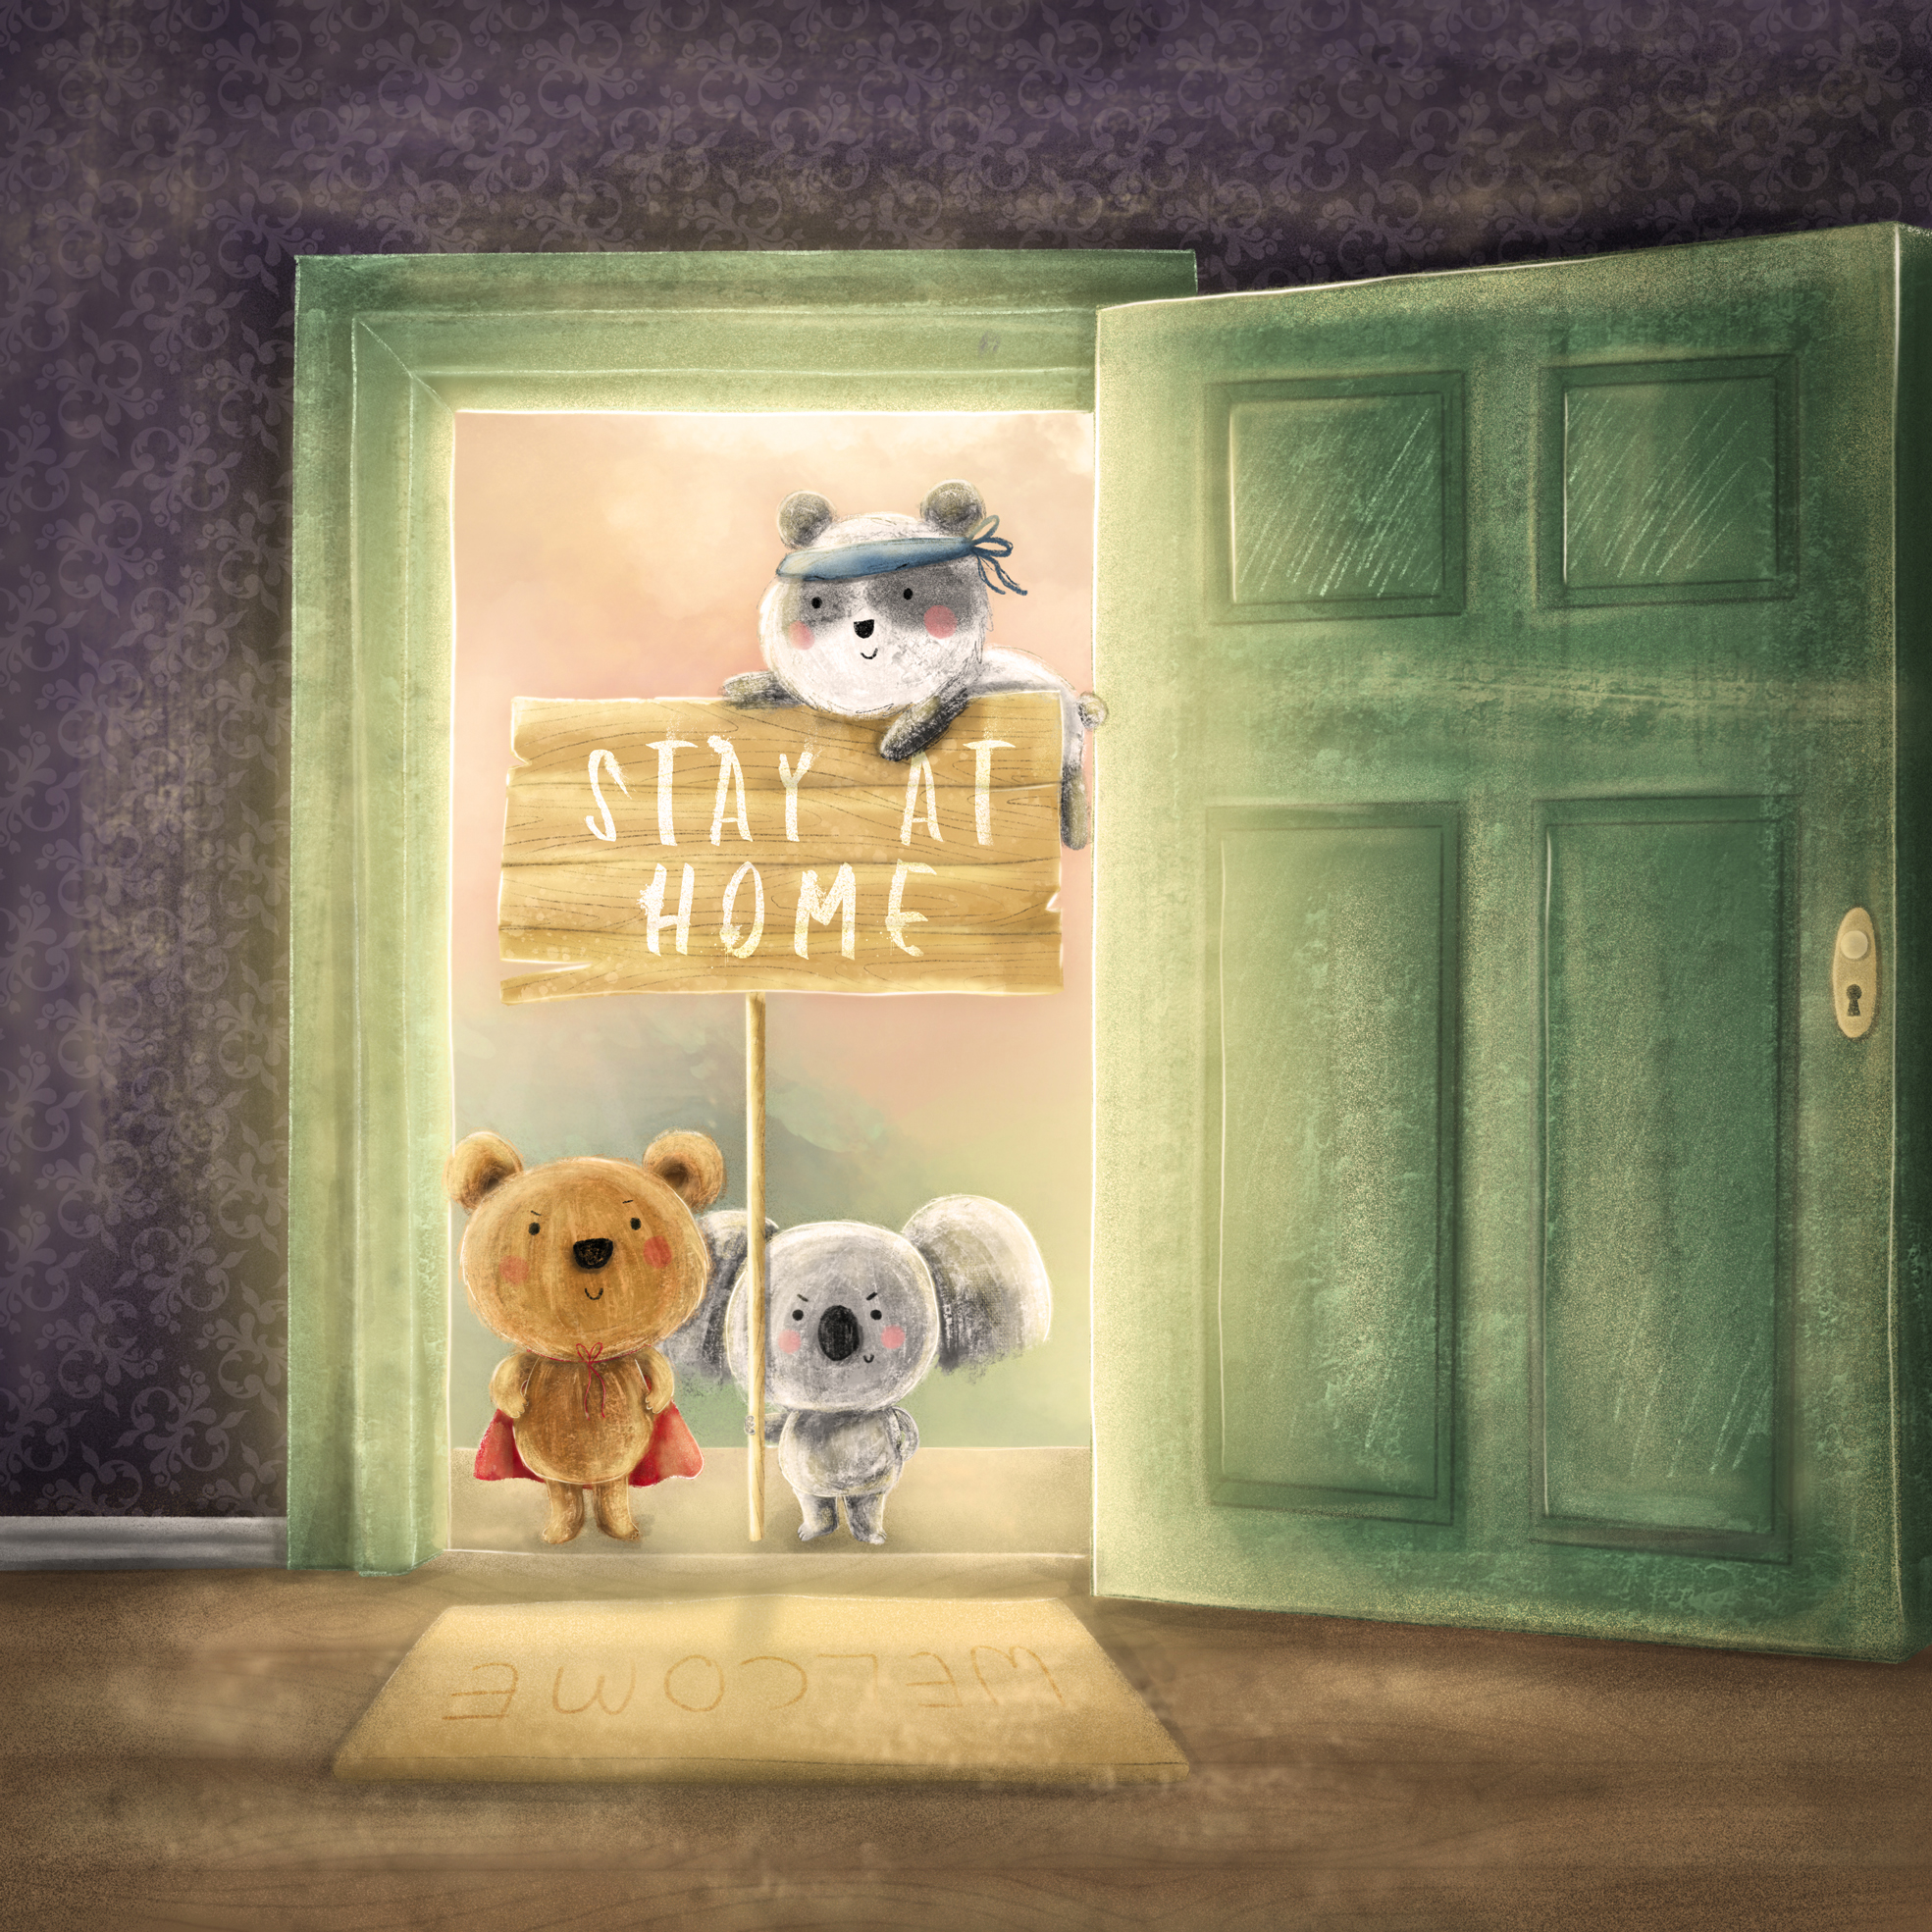 Stay_At_Home-200